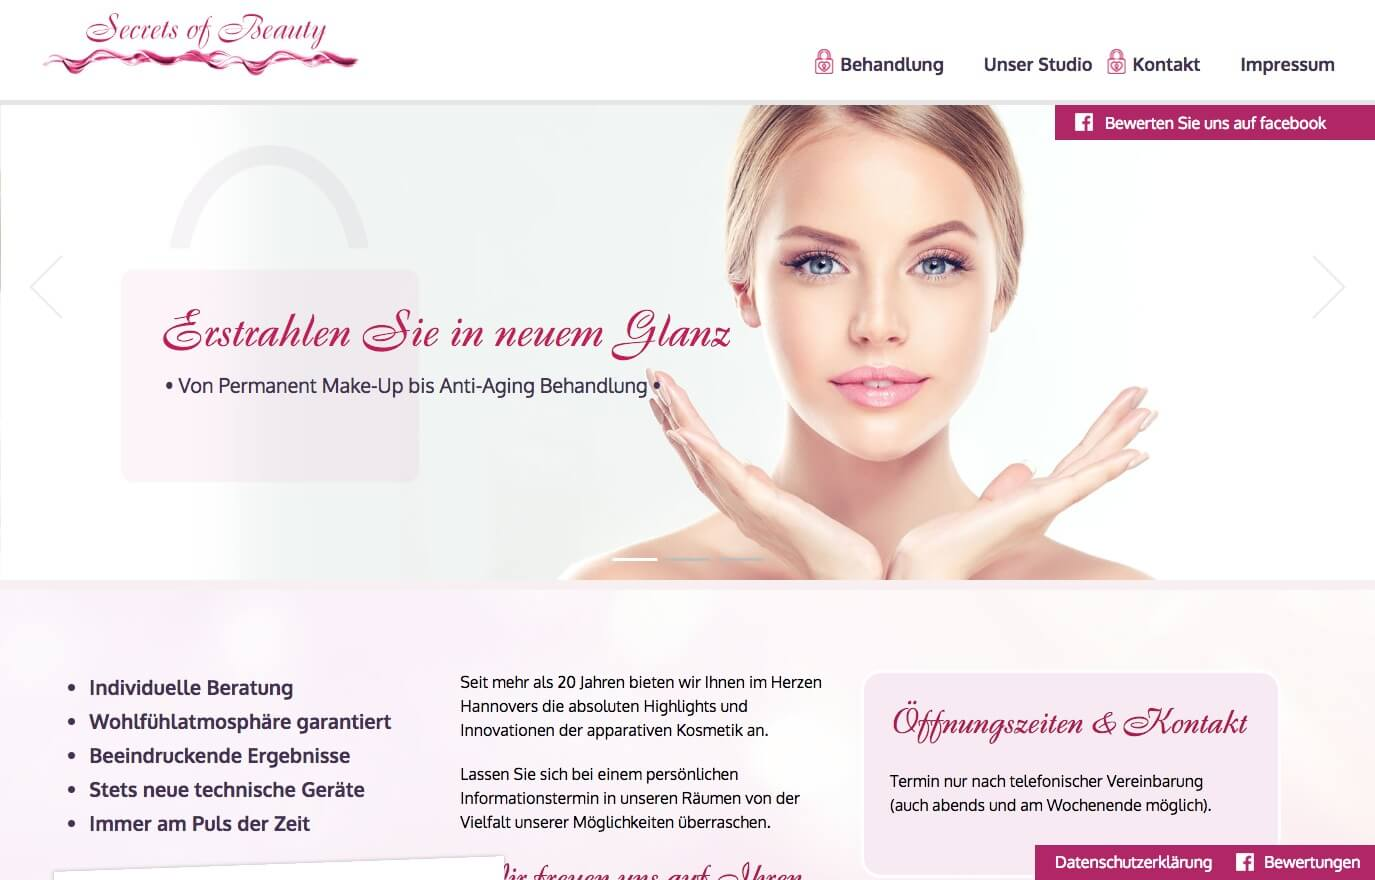 Image of Versierte Anti-Aging-Behandlungen in Hannover: Kosmetikstudio Secrets of Beauty